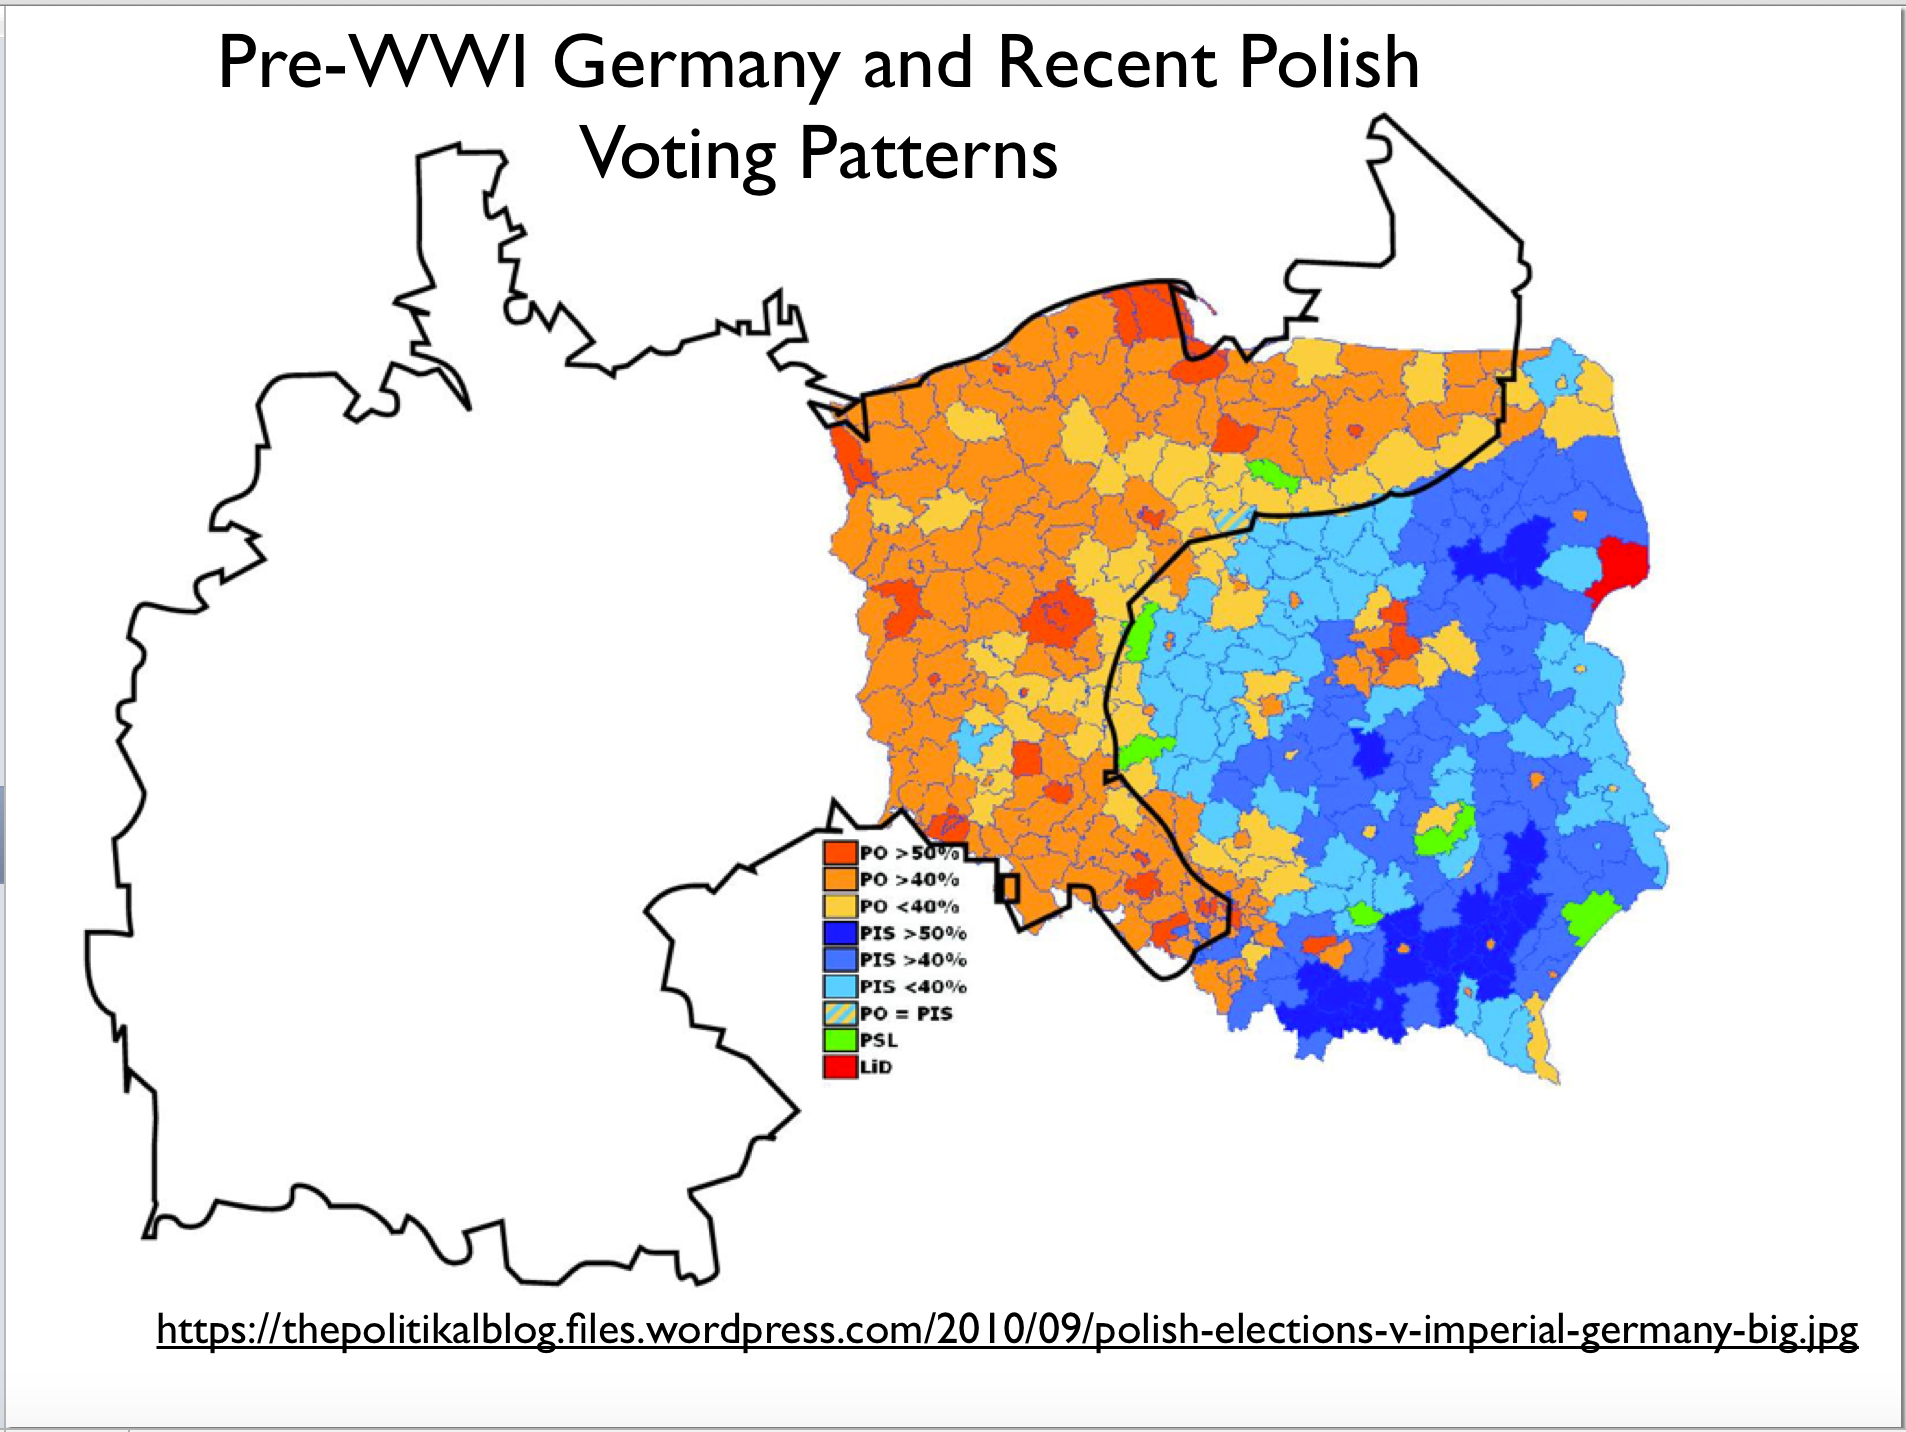 Polands Stark Electoral Divide GeoCurrents - Germany map 2015